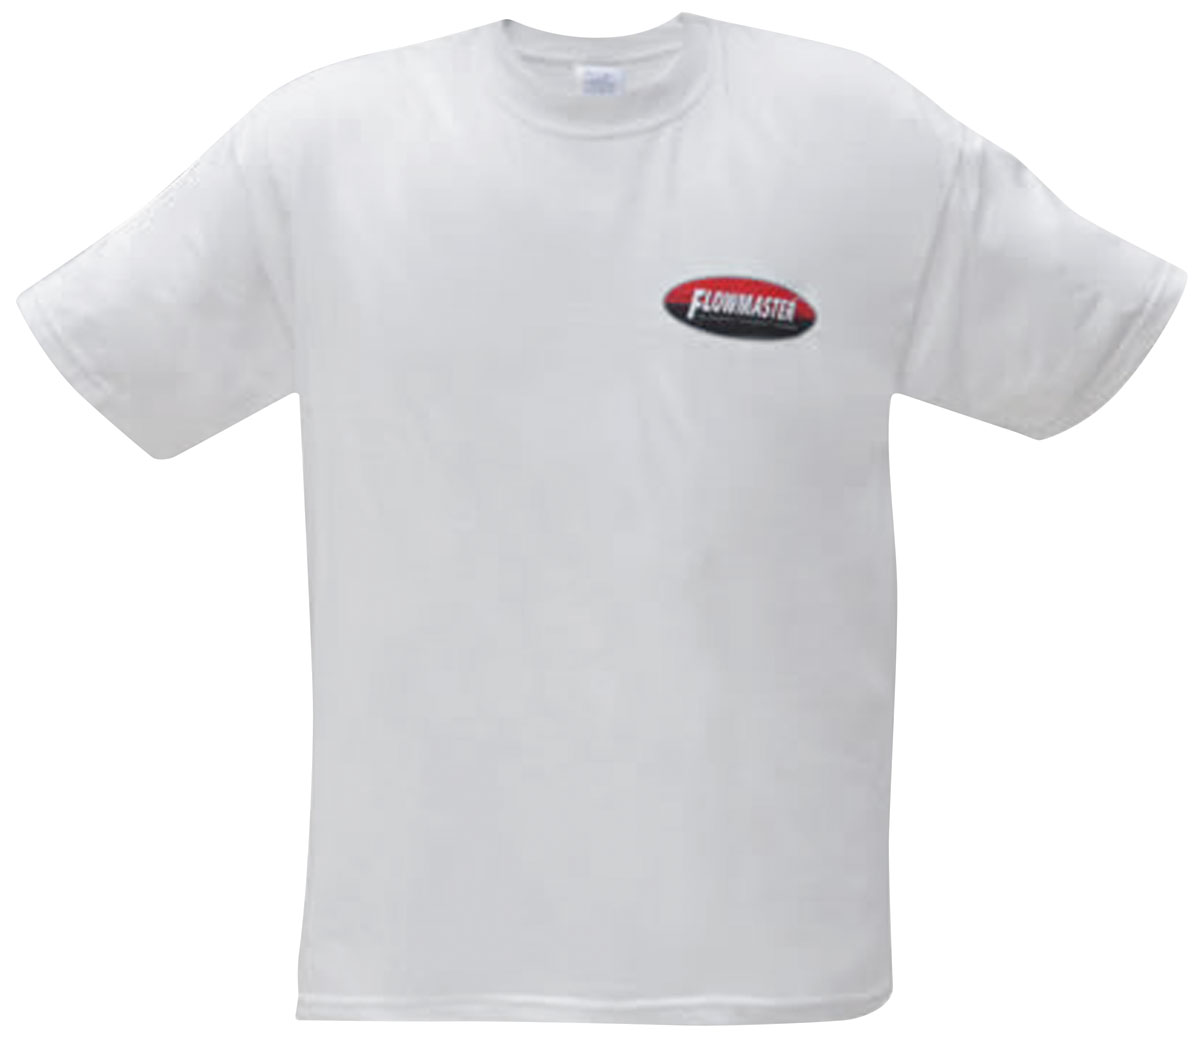 Shirt, Flowmaster Oval Tee, White